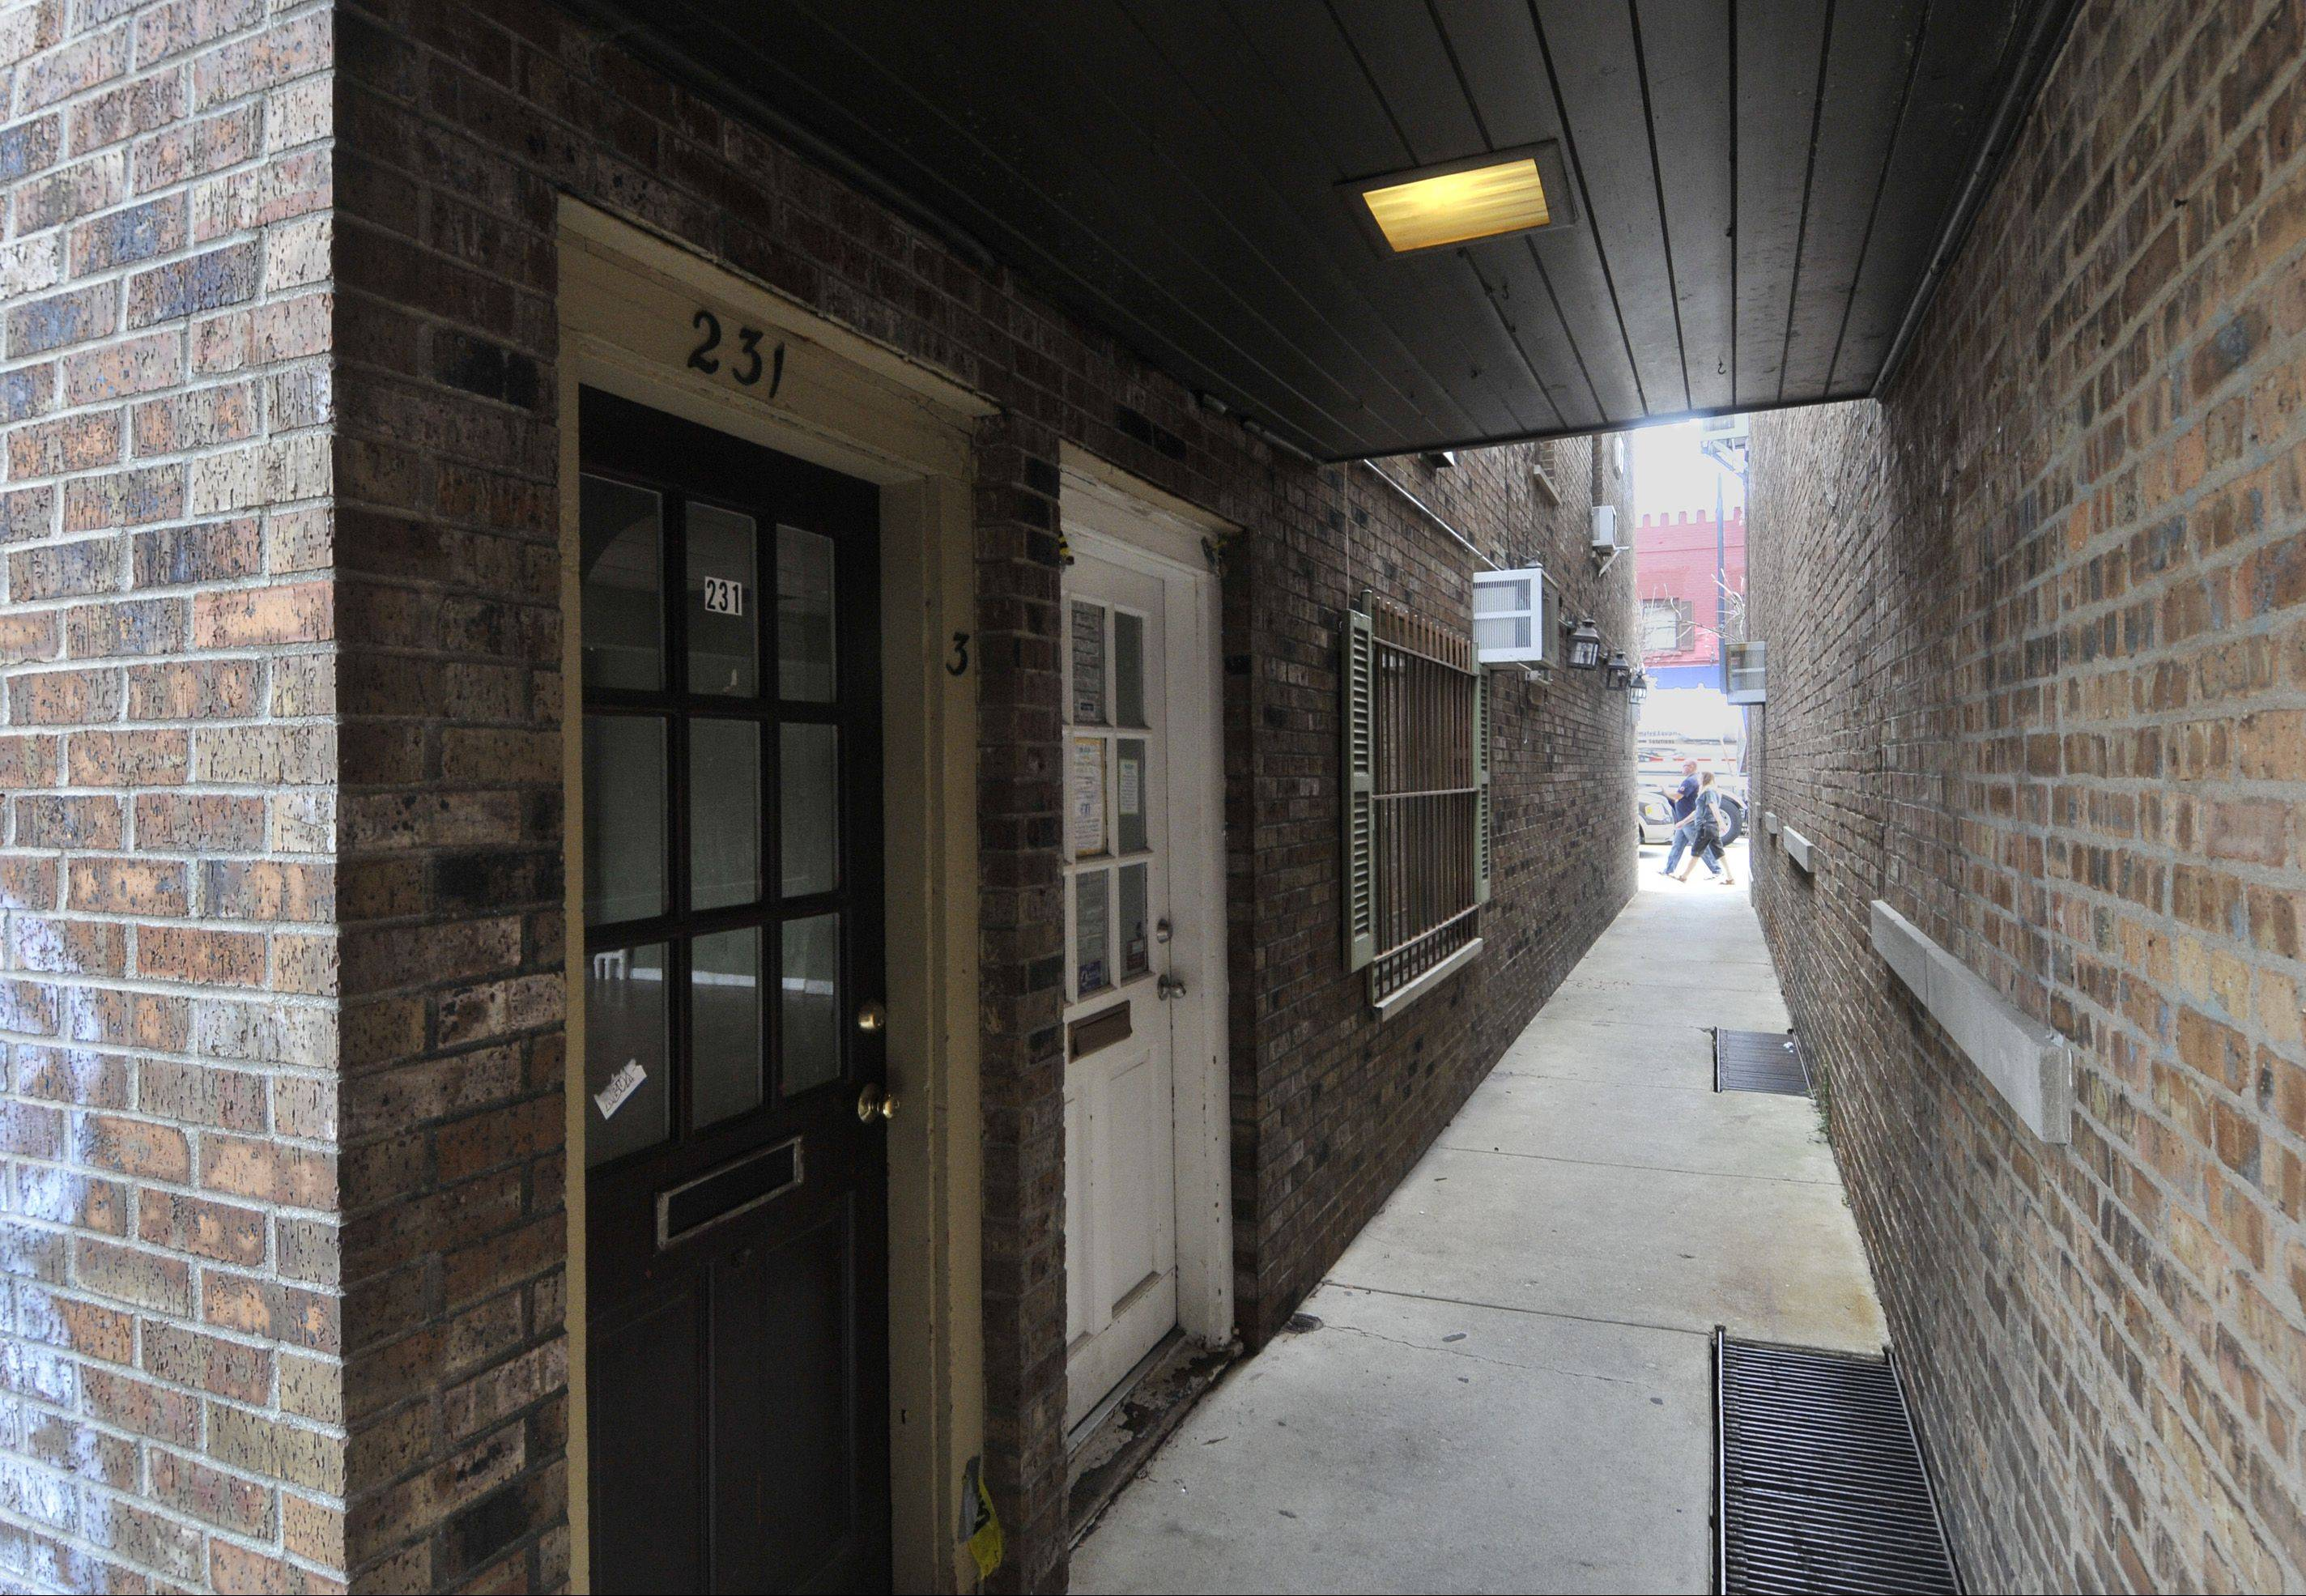 A 700-square-foot room in the rear of 231 S. Washington St. in Naperville soon will be home to the NaperBridge teen center after the city council approved the use of space Tuesday night. First-floor downtown space usually is reserved for retail, but this space has no frontage on Washington and is accessible from the back of the building or the alley between Fitness Experts and BK Jewelry.